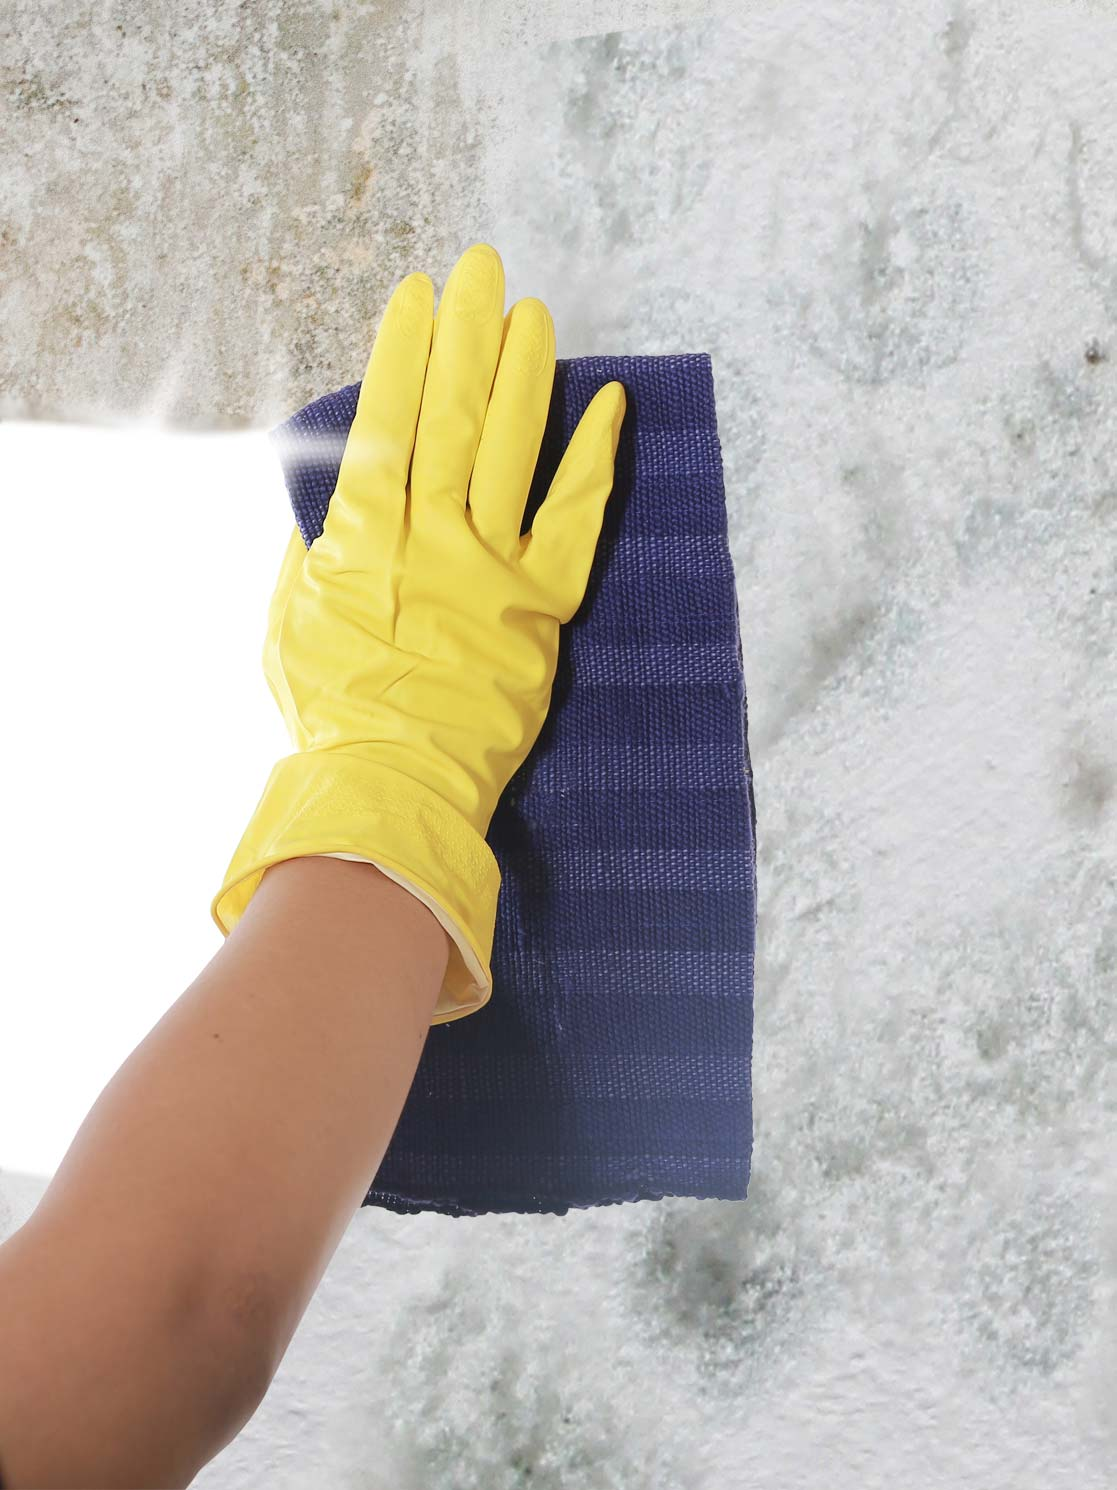 Clean mold off of bathroom tiles